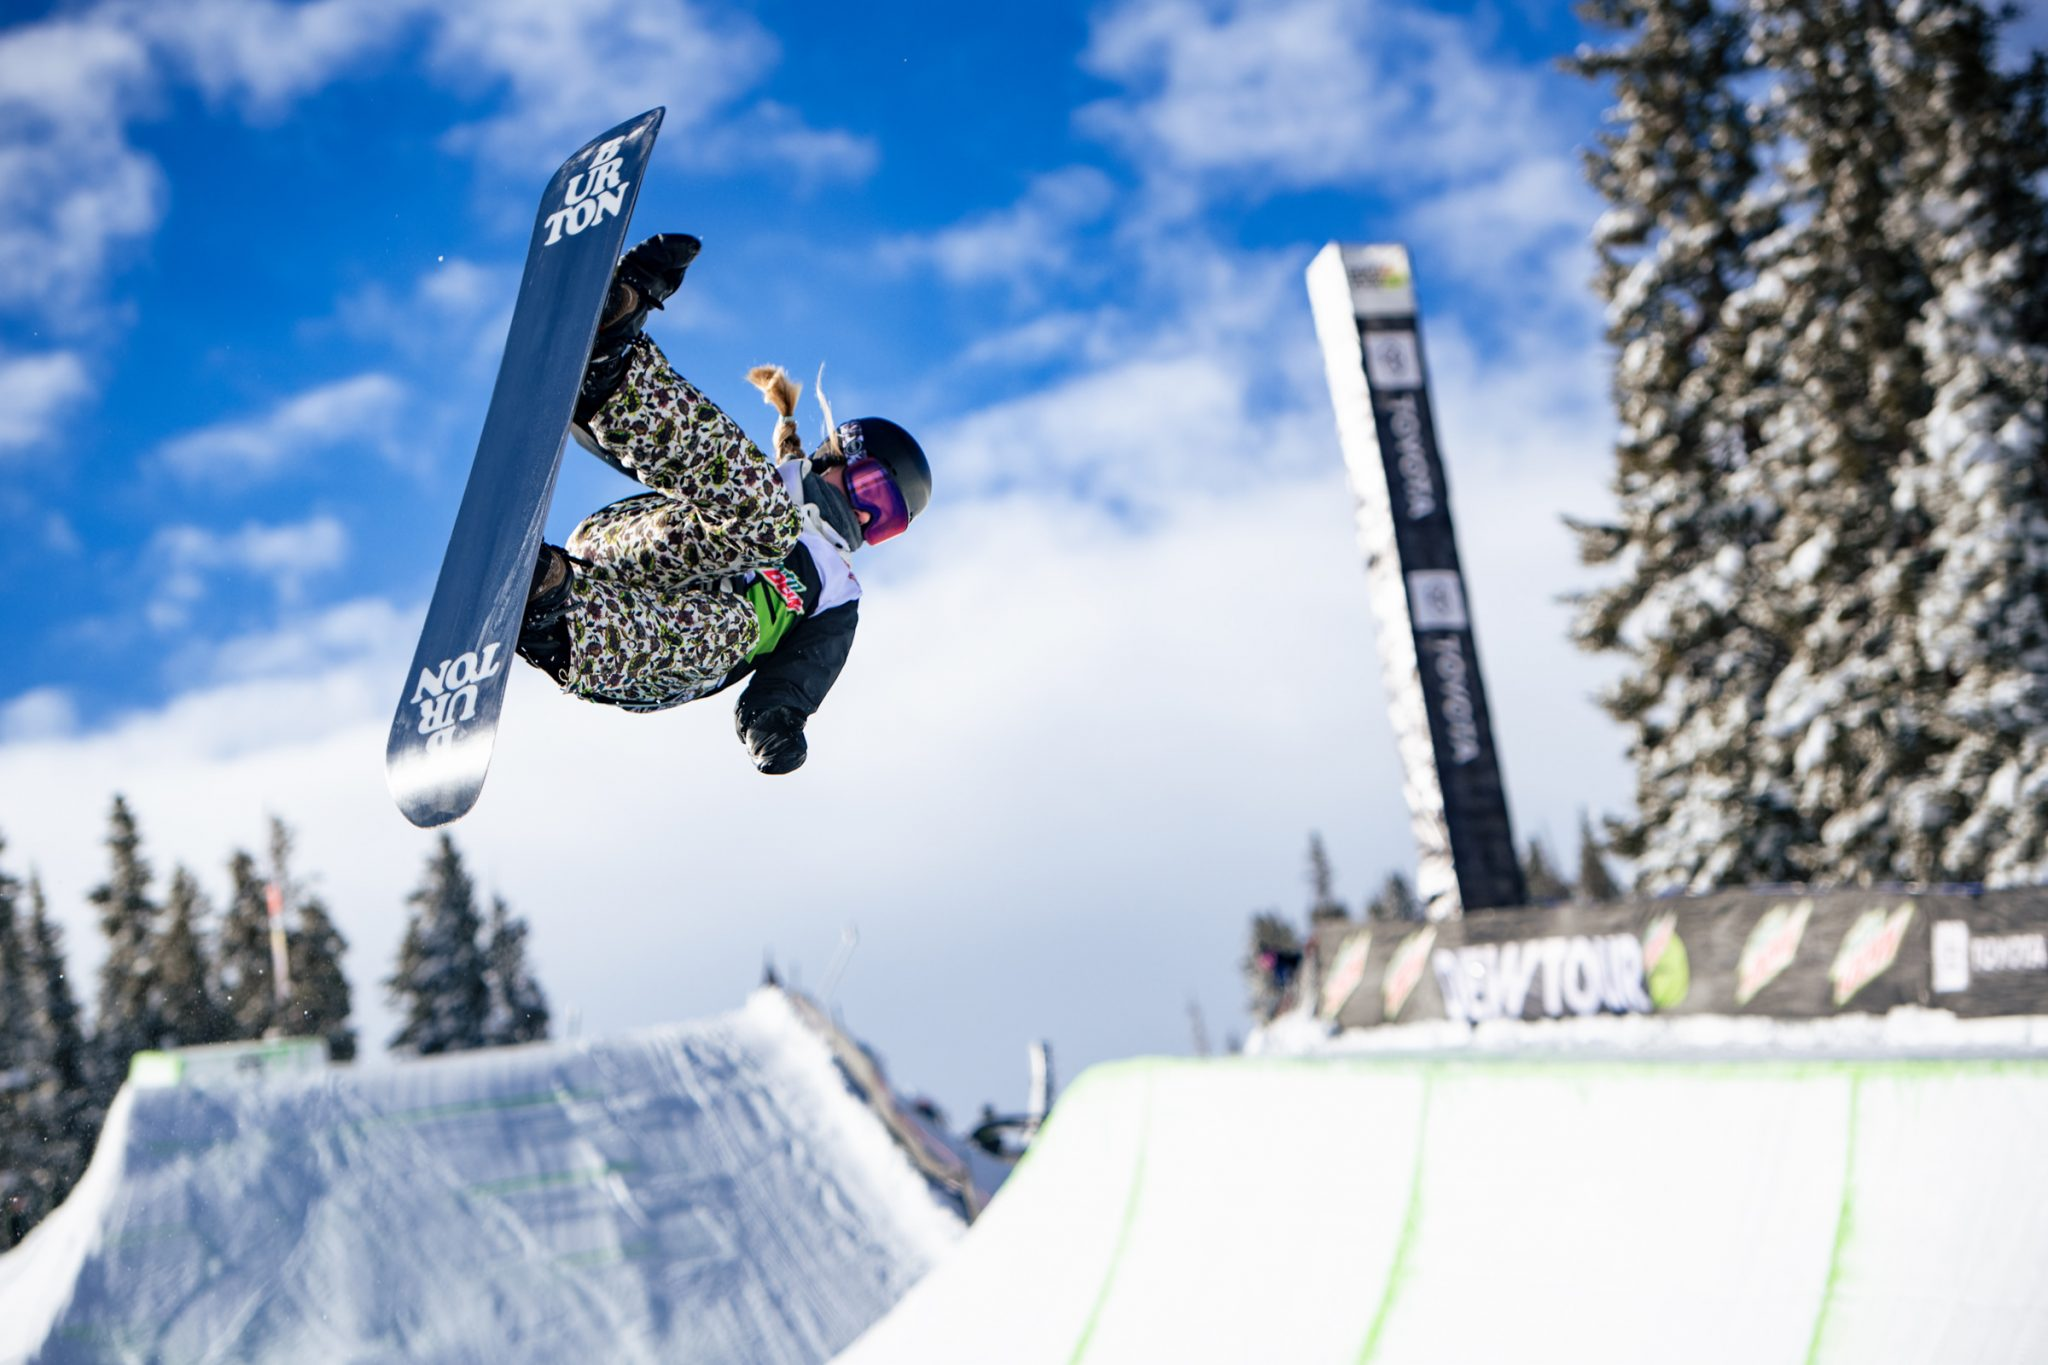 Snowboarder on a half-pipe jumping mid air